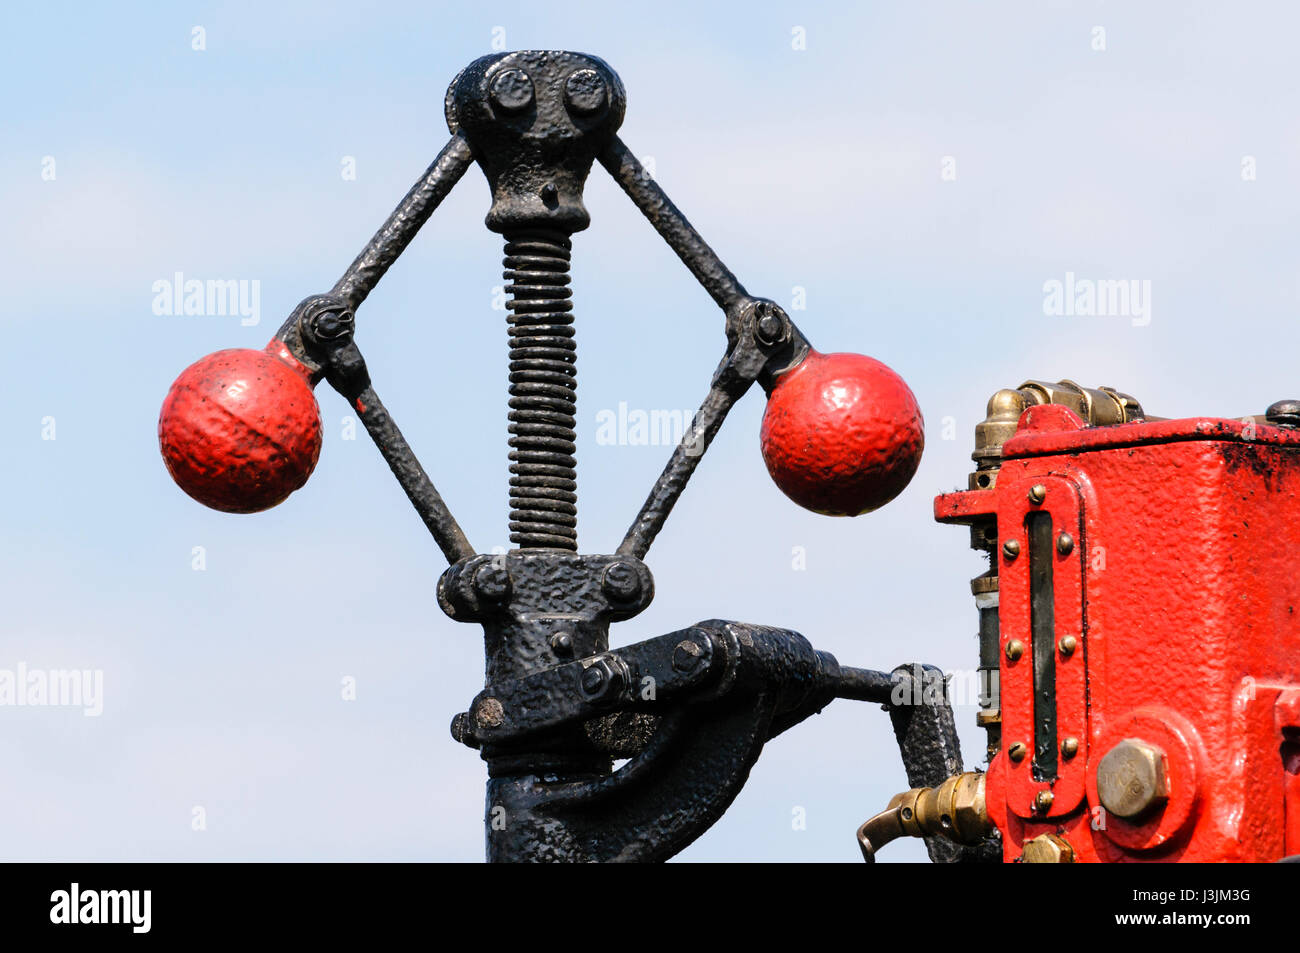 Iron balls on the Centrifugal governor mechanism of a traction engine - used to control the speed of the engine. - Stock Image